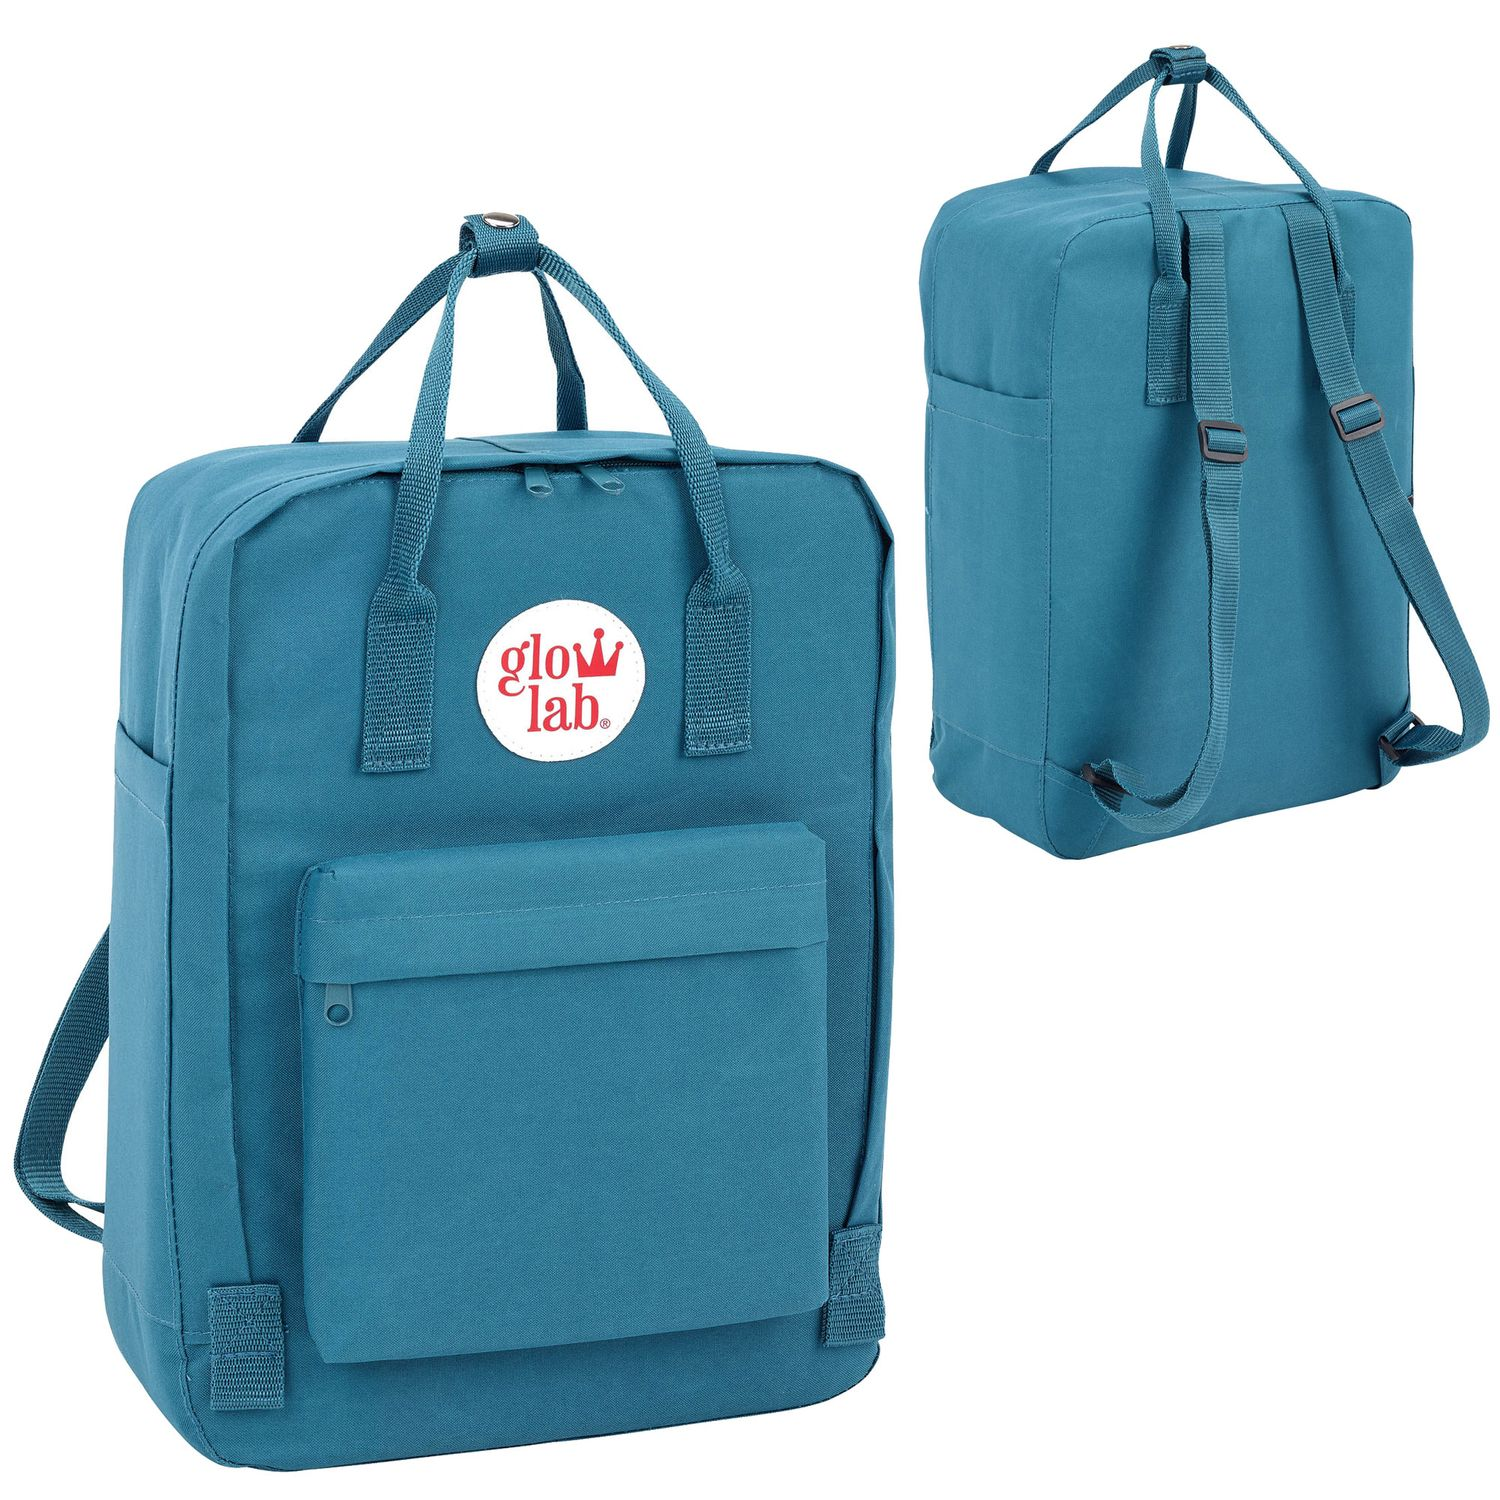 Glowlab Backpack with Handles Multi Colour – image 5